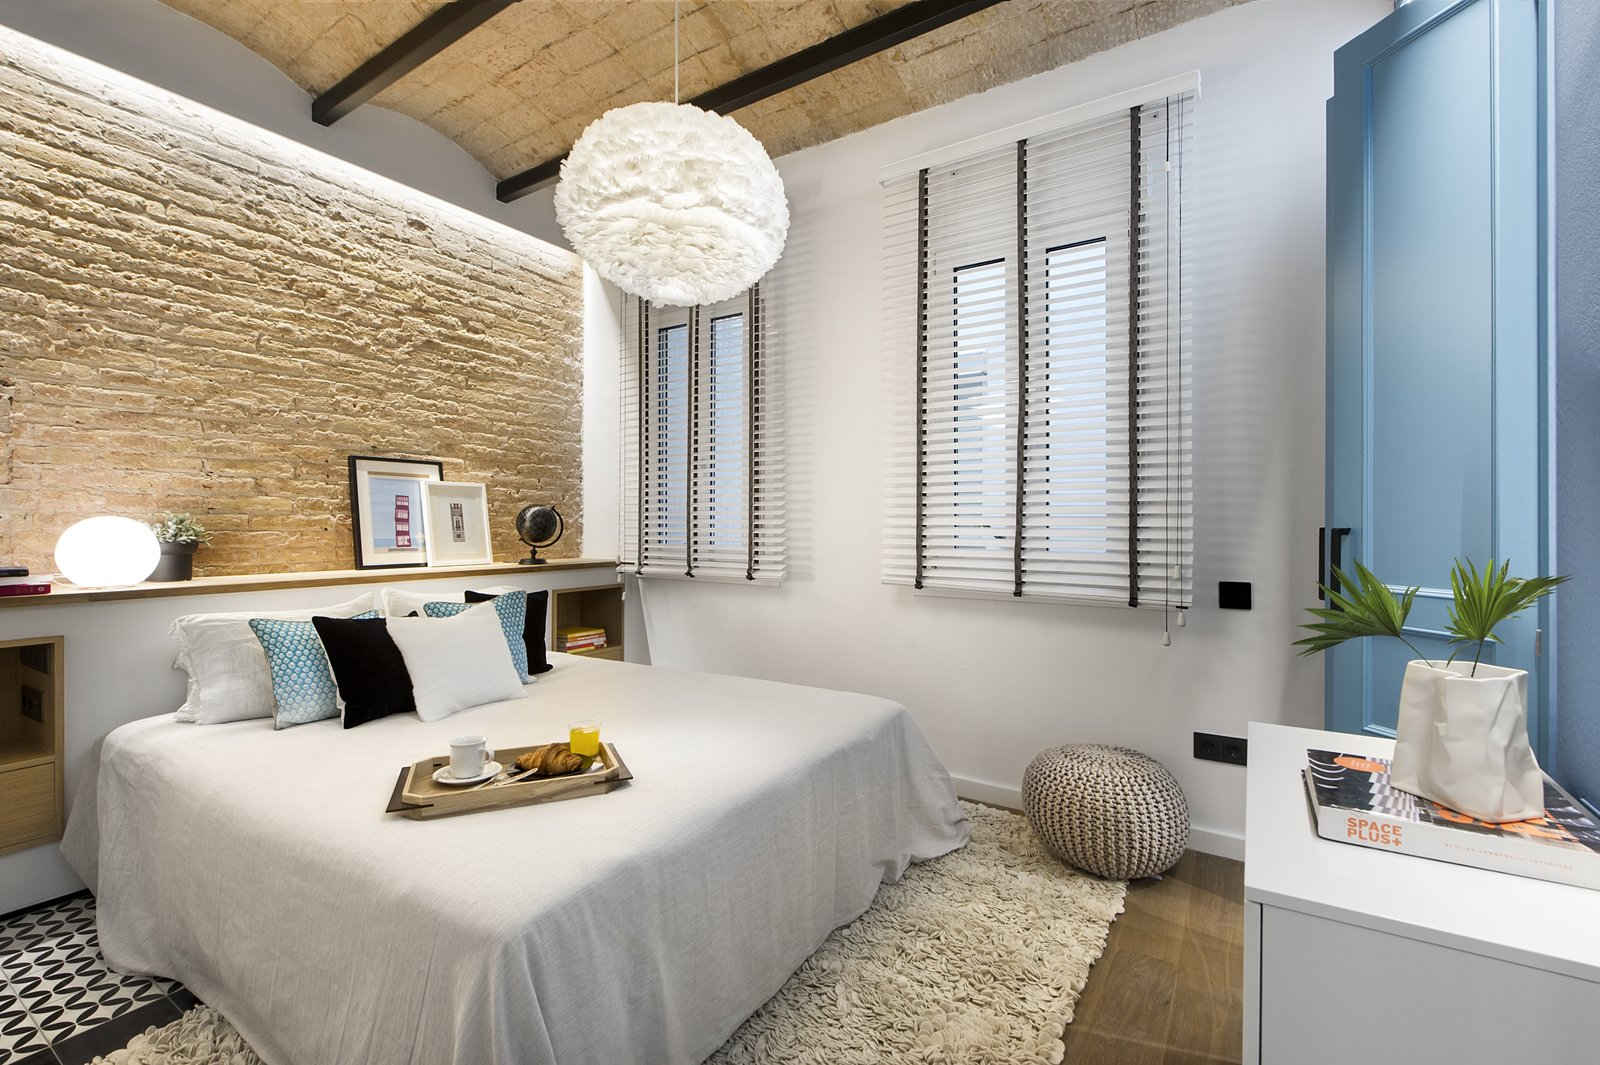 Bedroom, Bed, Dresser, Storage, Pendant, Medium Hardwood, and Ceramic Tile  Best Bedroom Storage Ceramic Tile Bed Photos from A Smart Layout Maximizes Space in This Compact Urban Beach Apartment in Barcelona